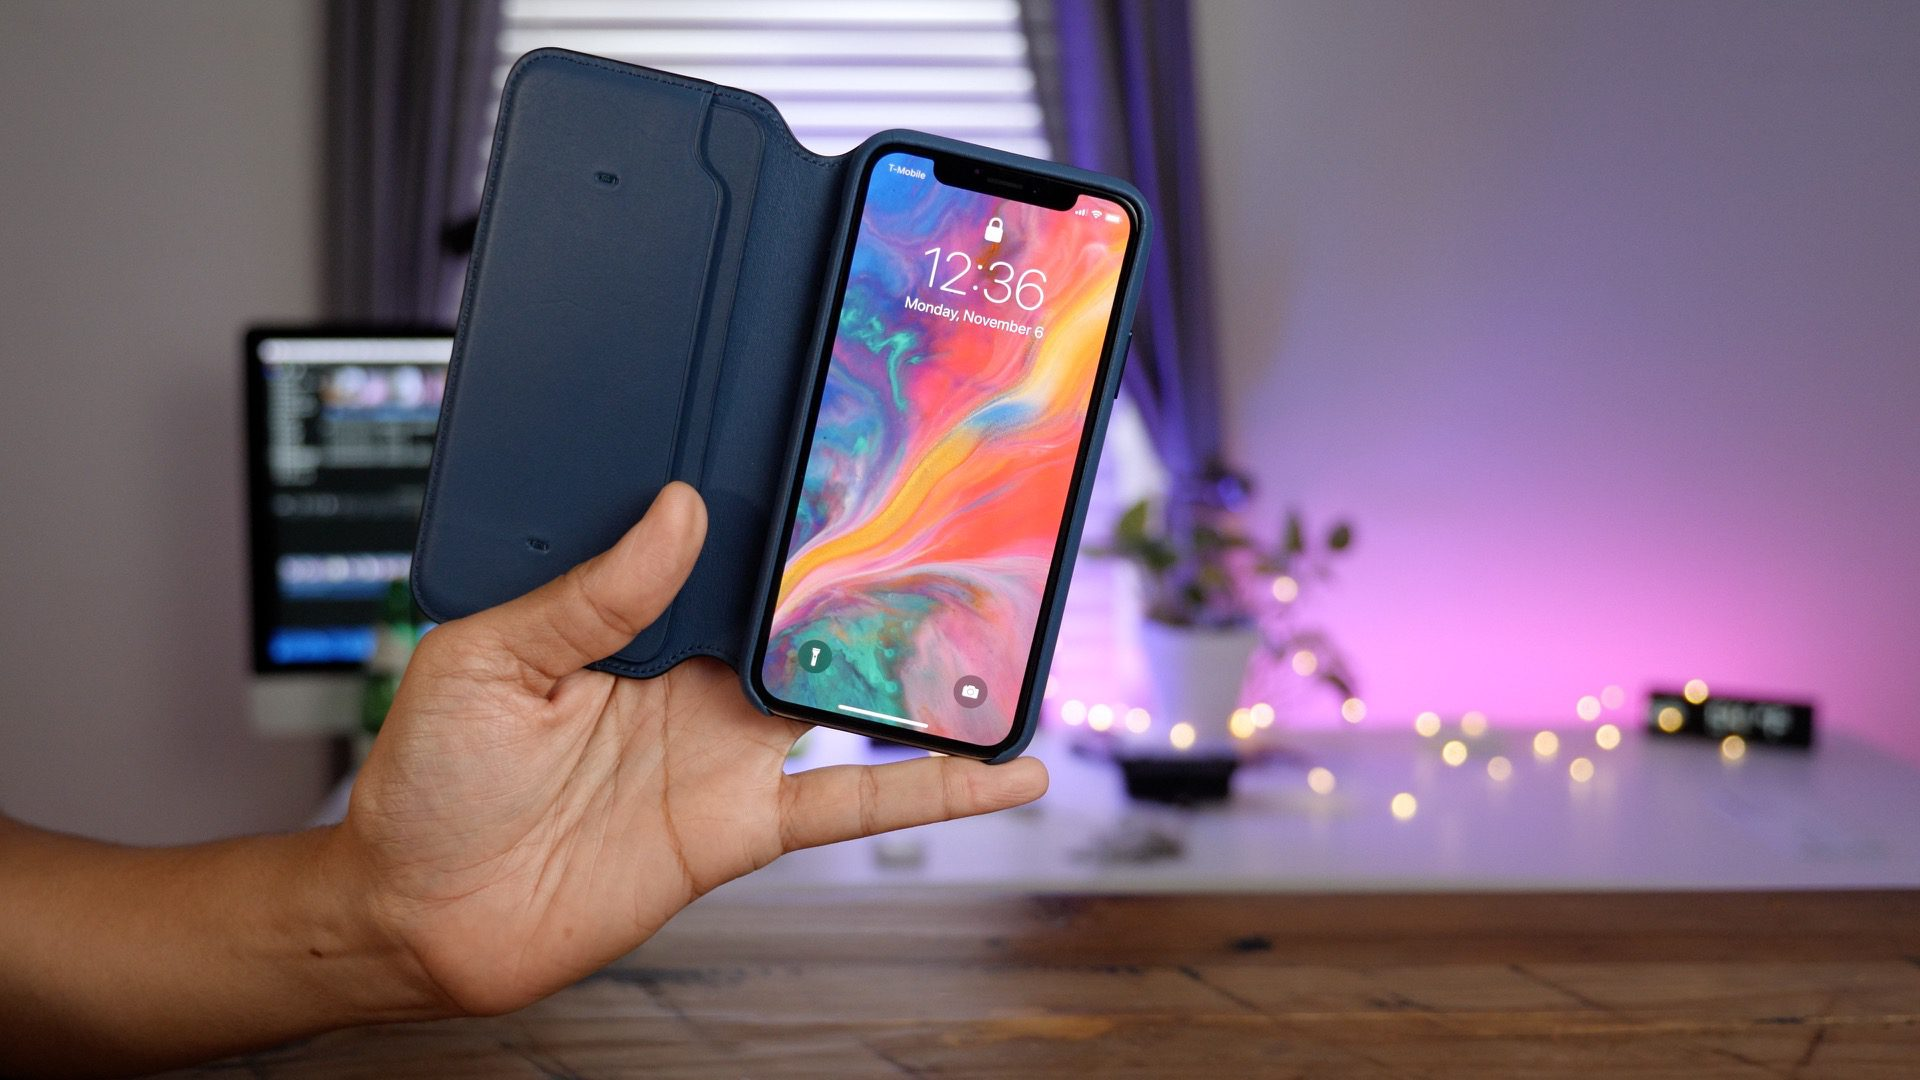 Put an official Apple leather folio case on your iPhone X from $44.50 via Amazon